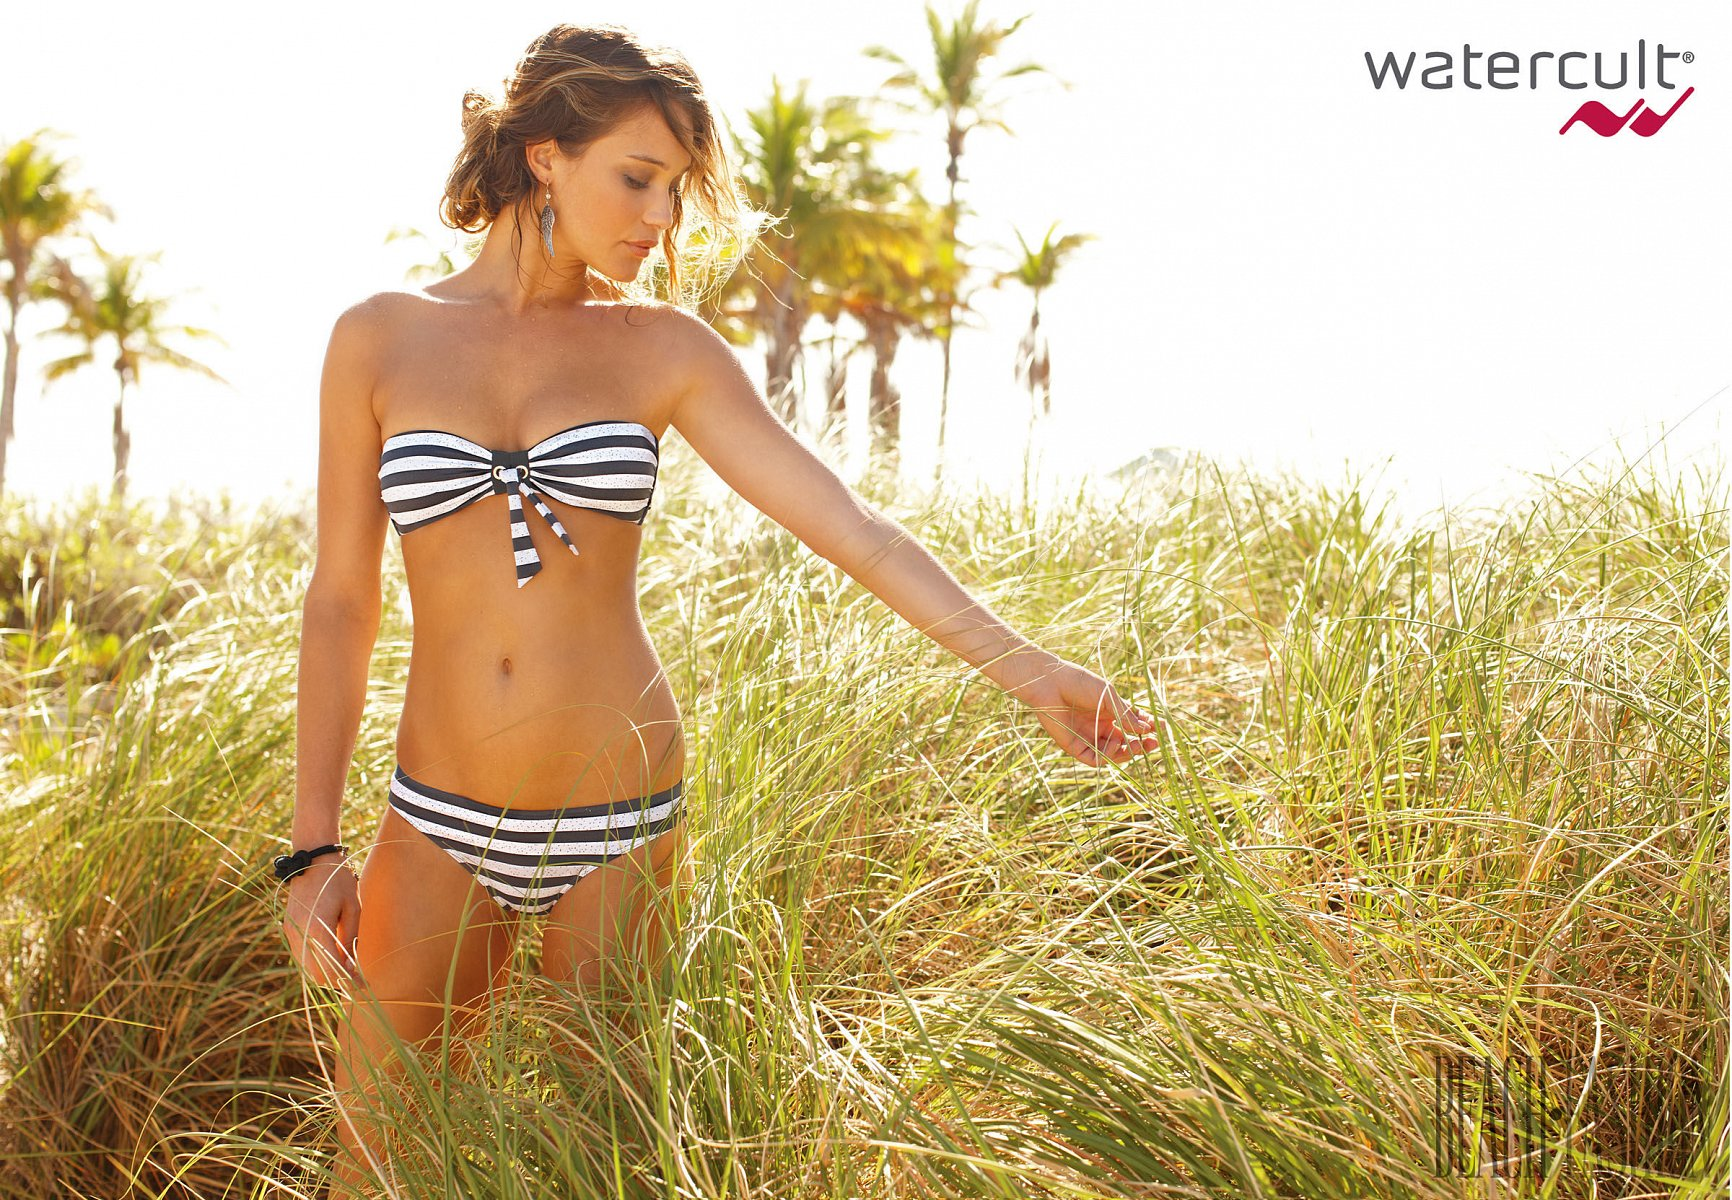 Watercult 2013 collection - Swimwear - 32